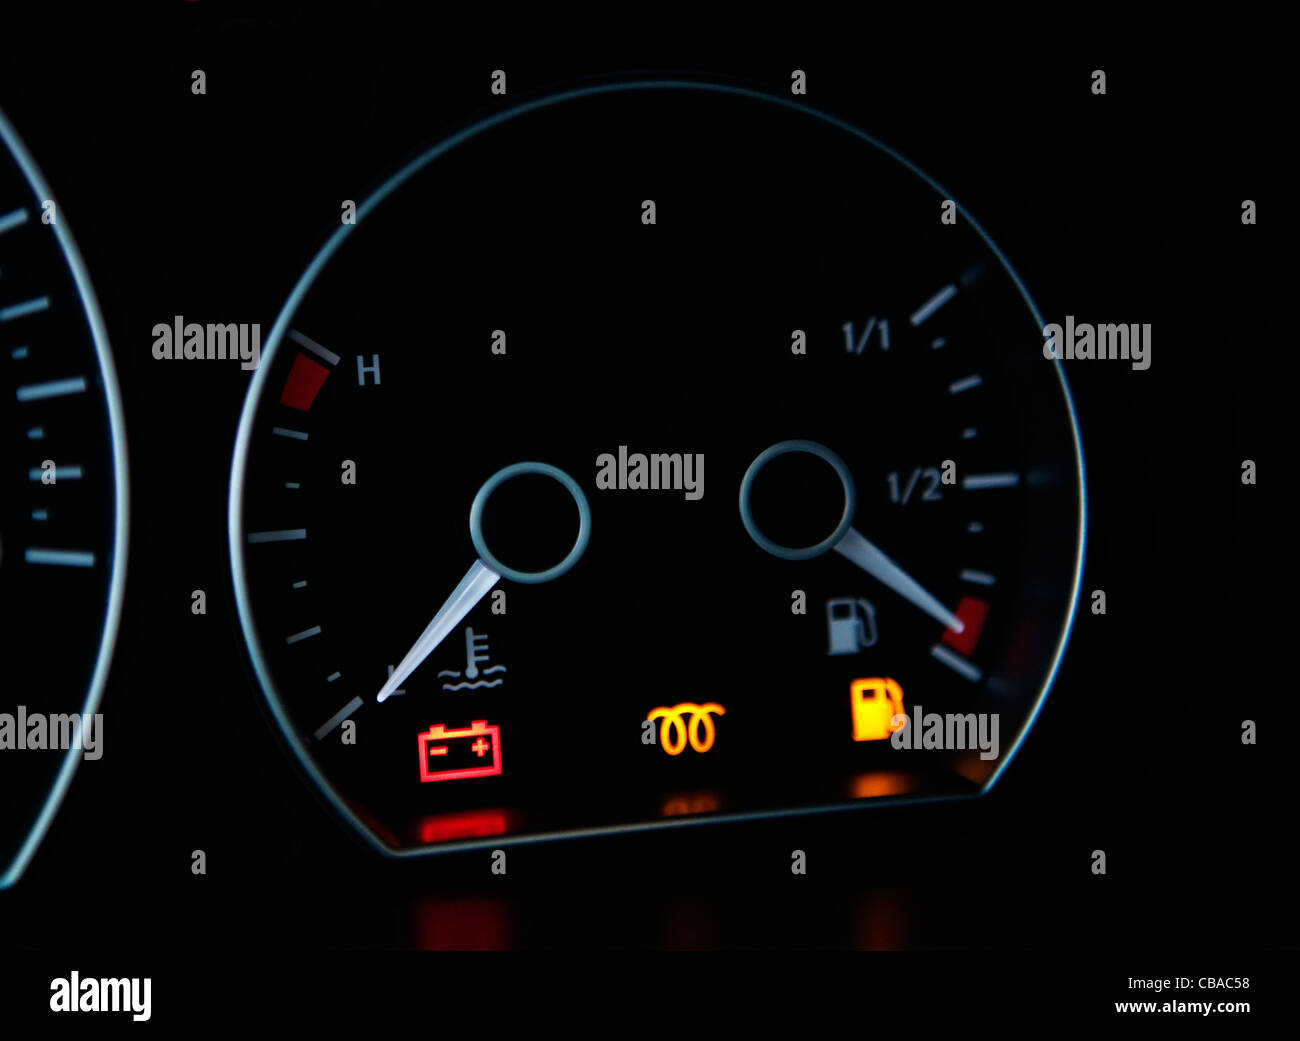 Car Dashboard Sign Multifunction Display Stock Photo Royalty - Car sign on dashboard